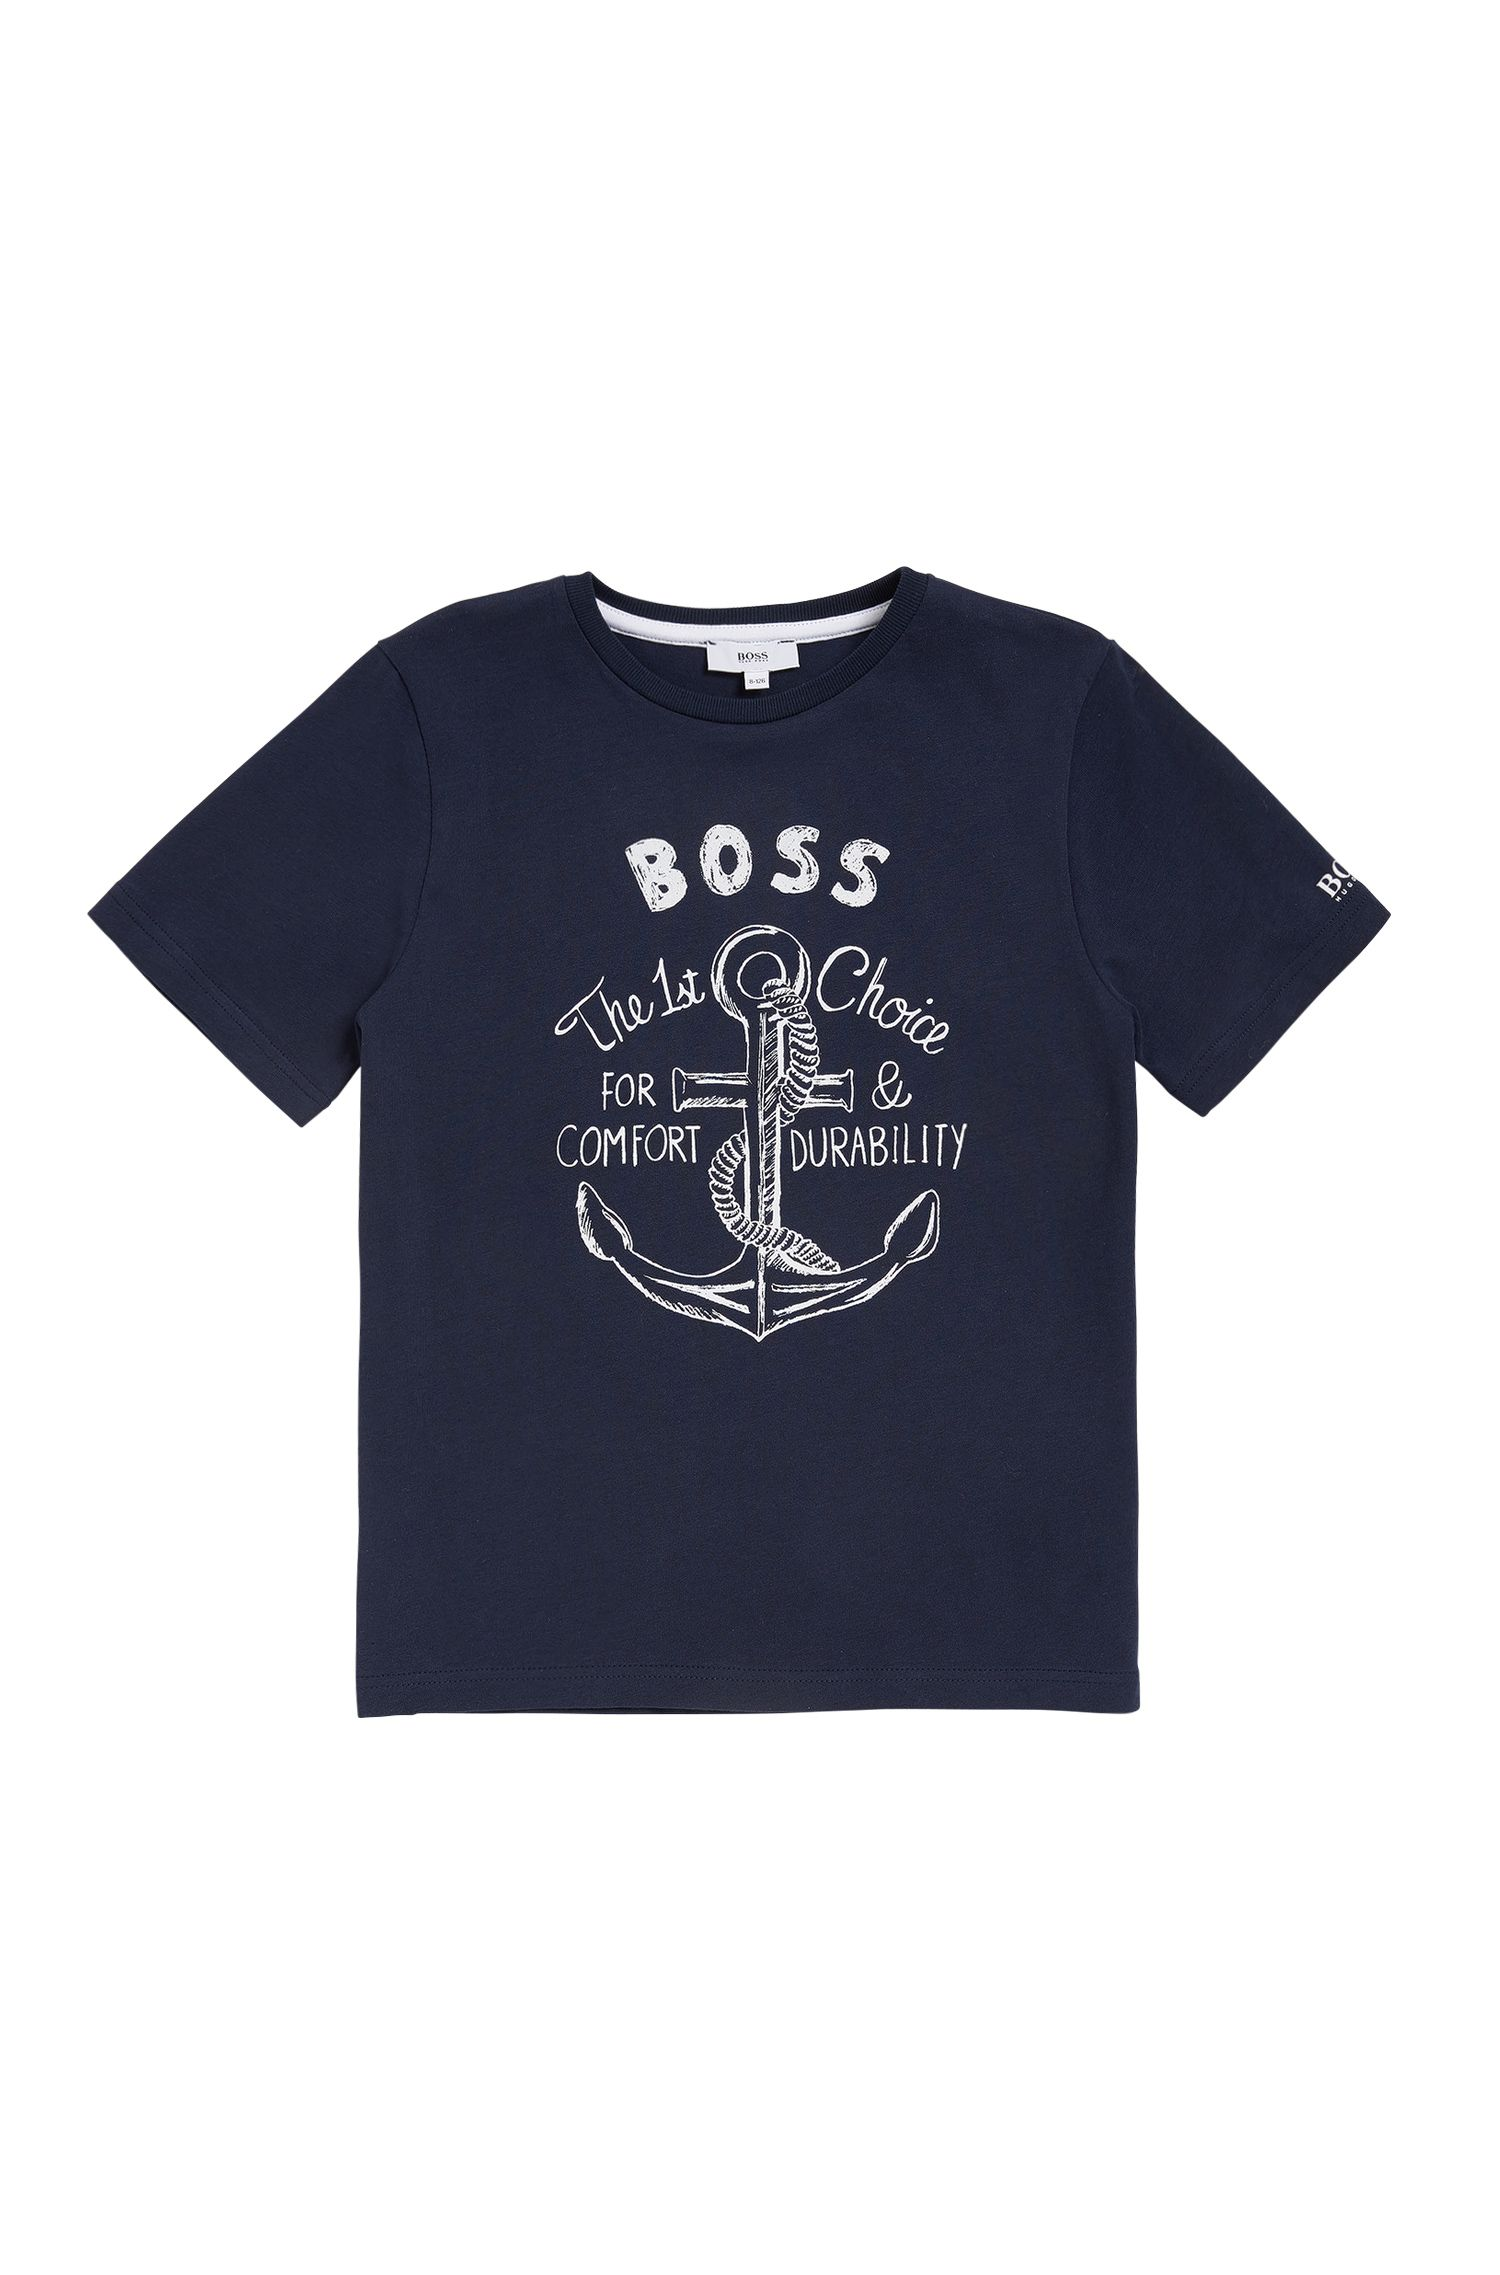 T-shirt Regular Fit pour enfant en jersey simple